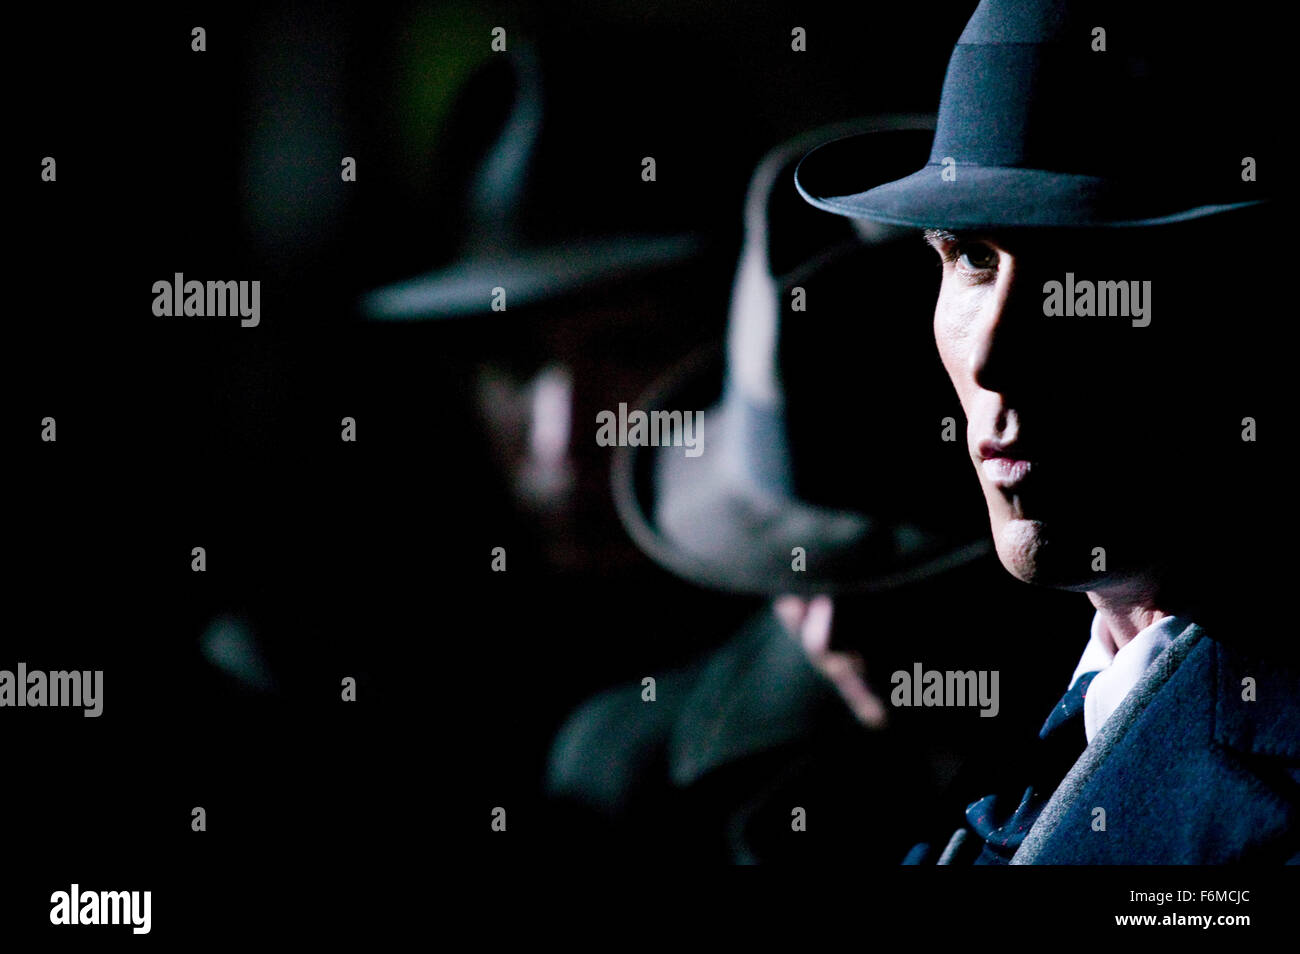 RELEASE DATE: July 1, 2009. MOVIE TITLE: Public Enemies. STUDIO: Universal Pictures. PLOT: The Feds try to take - Stock Image